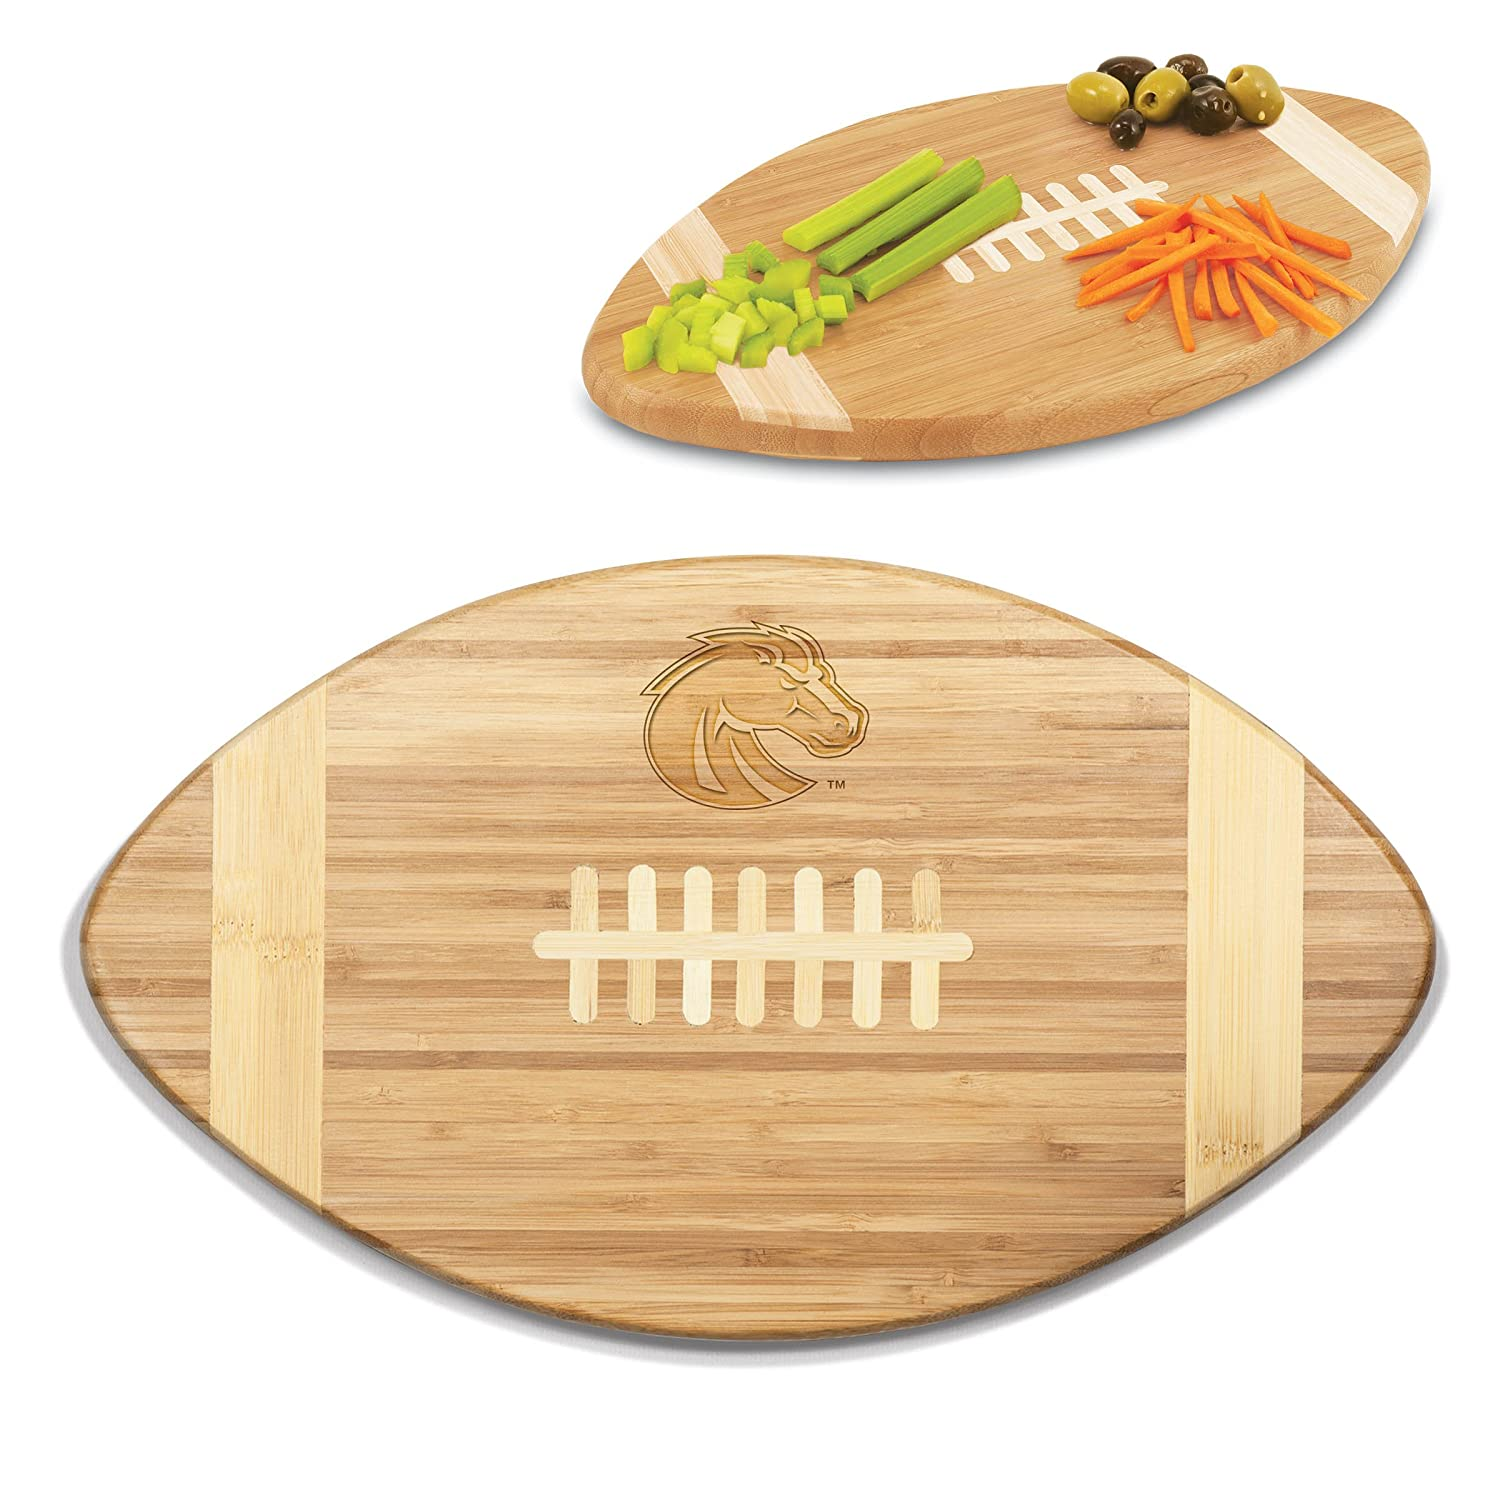 NCAA Boise State Broncos Touchdown 16-Inch Picnic Time 896-00-505-703-0 Bamboo Cutting Board